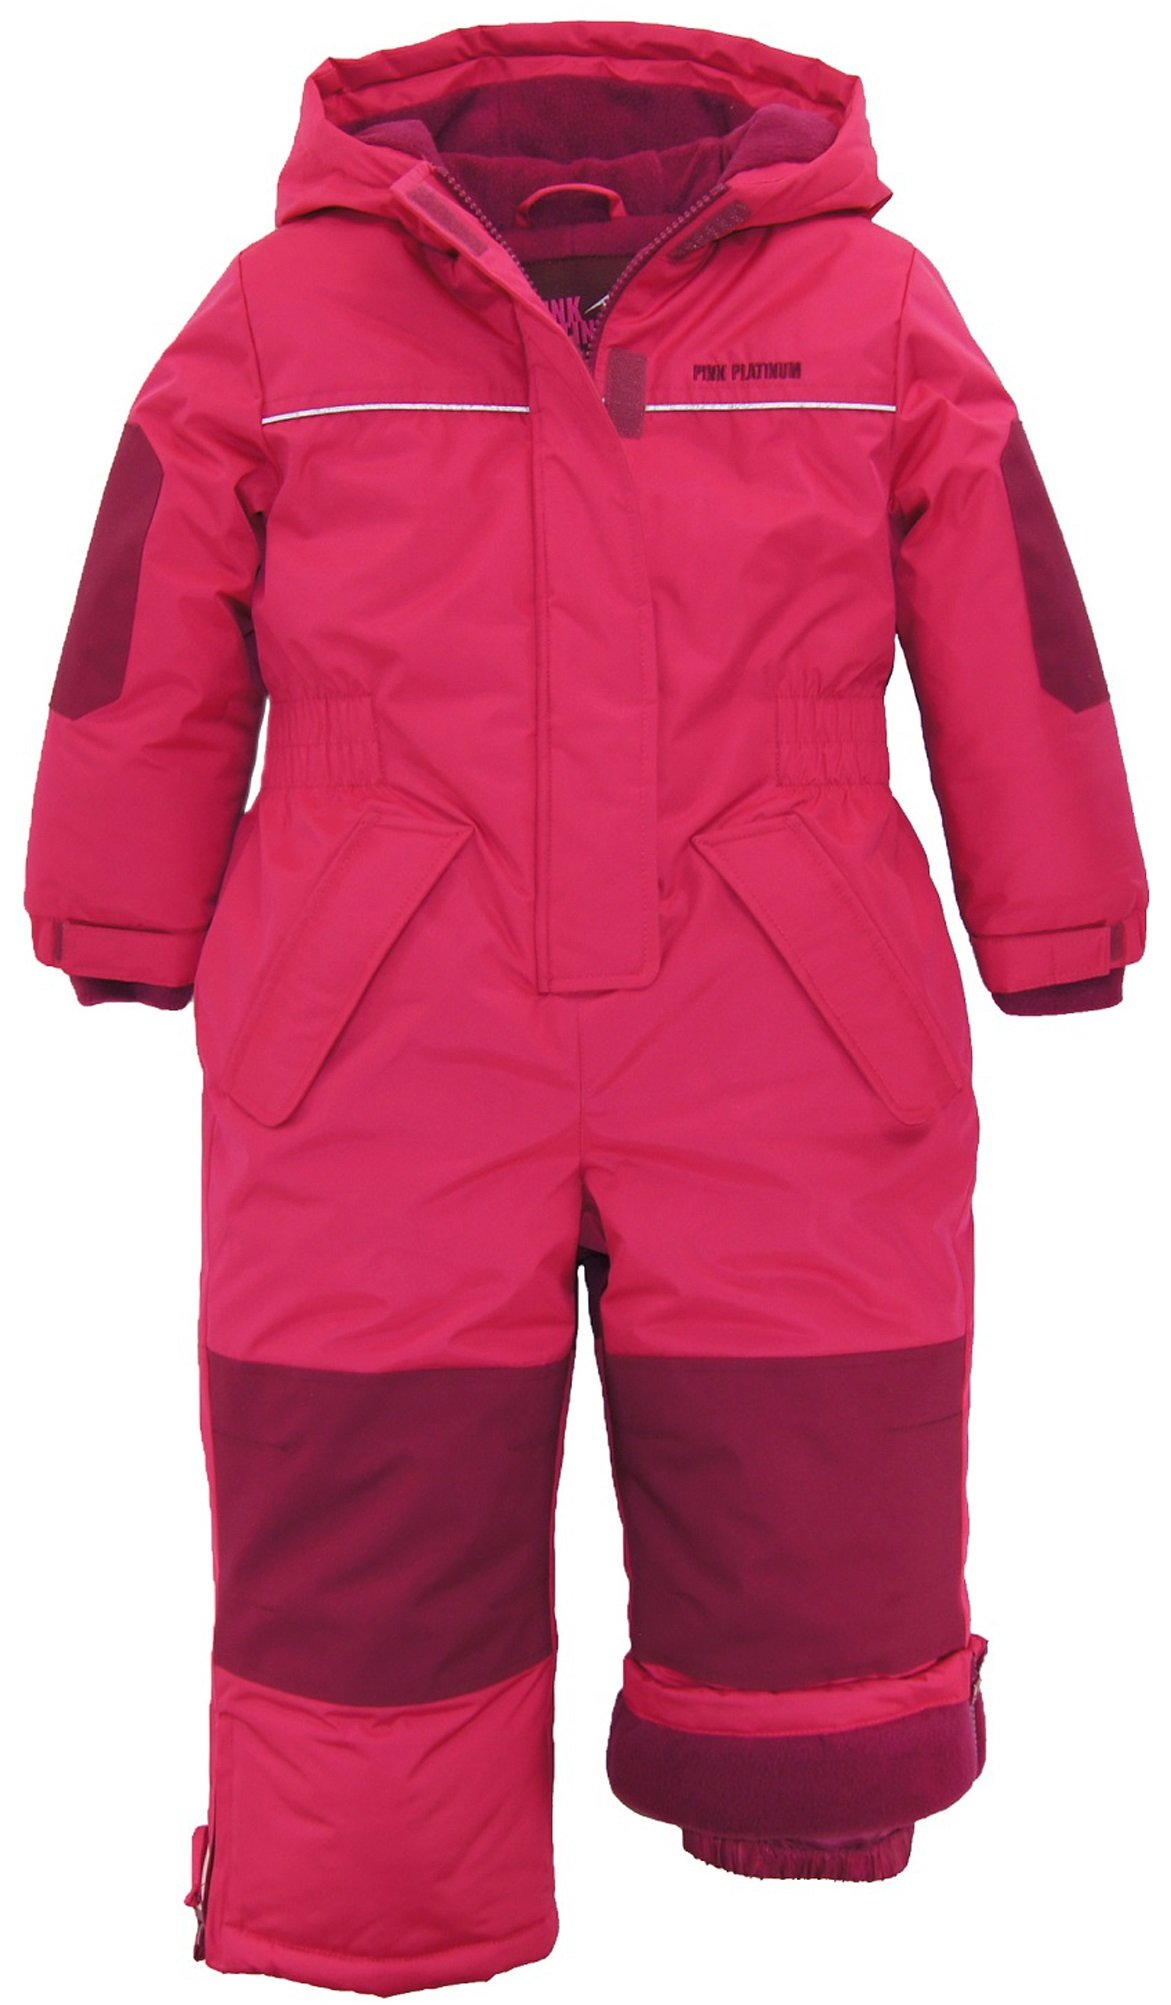 Pink Platinum Snow Mobile For Girls, Babies & Toddlers - 1-Piece Snowsuit by Pink Platinum (Image #1)